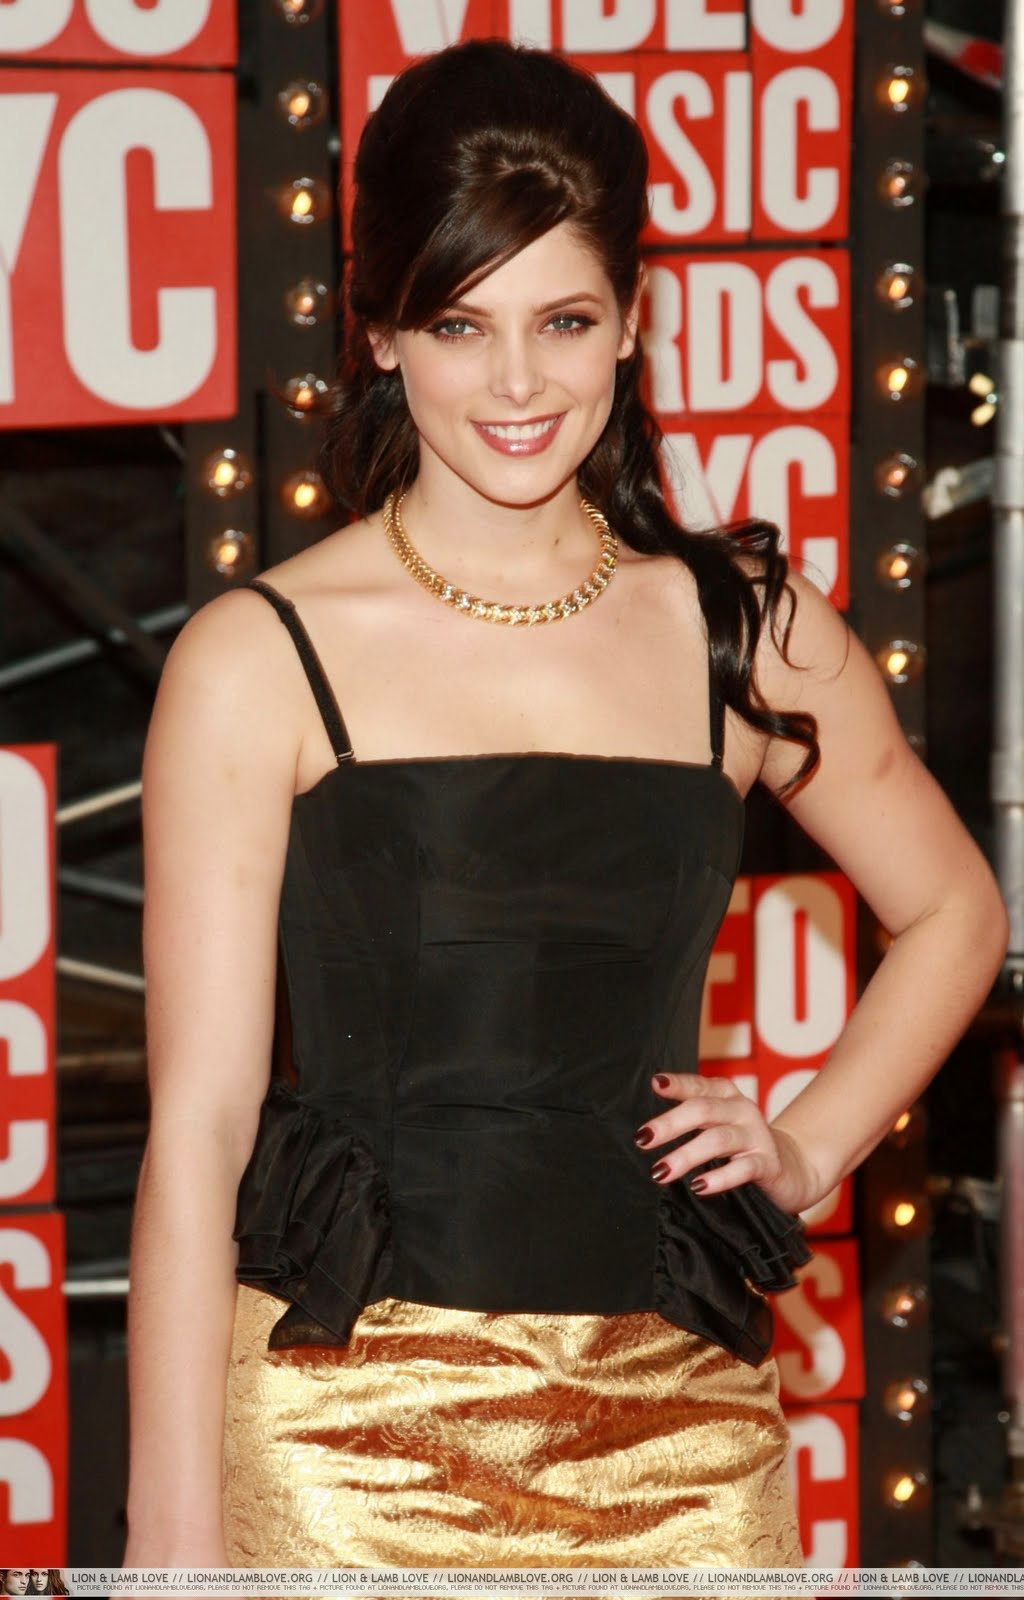 http://2.bp.blogspot.com/_Fr5jtSt05Hg/TIkHCgB4YuI/AAAAAAAAiPI/IjzG38cX1KU/s1600/Ashley-VMA-s-2009-ashley-greene-8145581-1600-2500.jpg